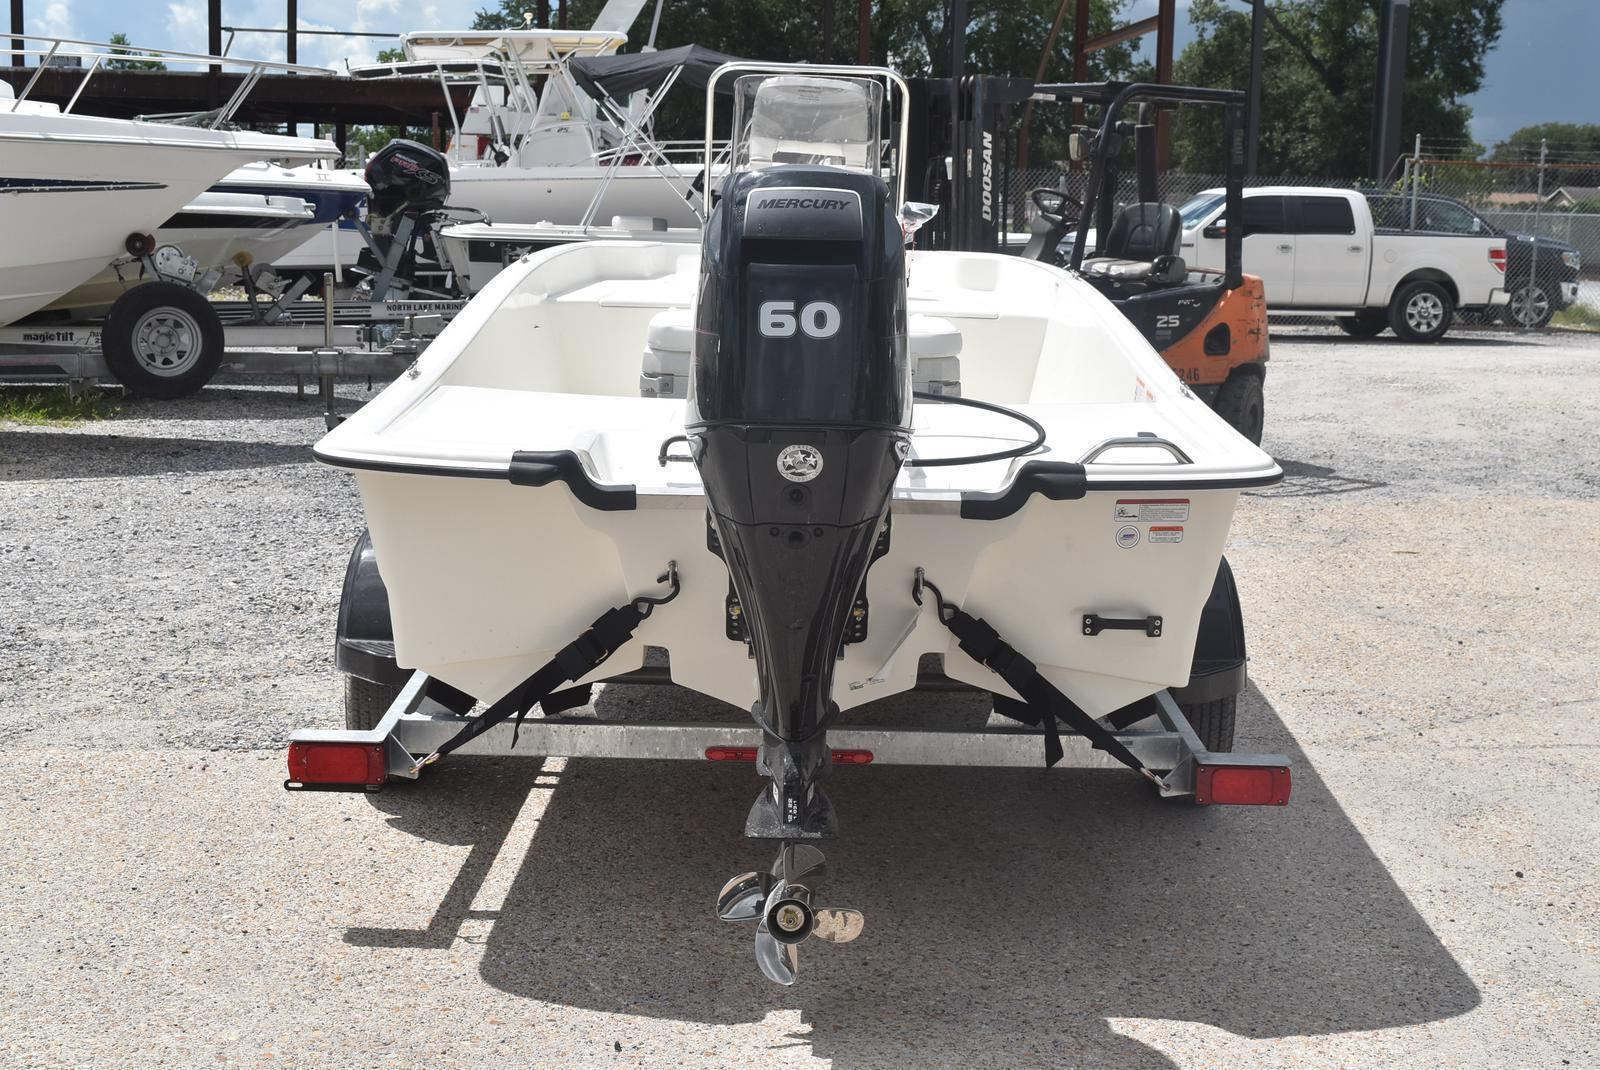 2020 Mako boat for sale, model of the boat is Pro Skiff 17, 75 ELPT & Image # 568 of 702